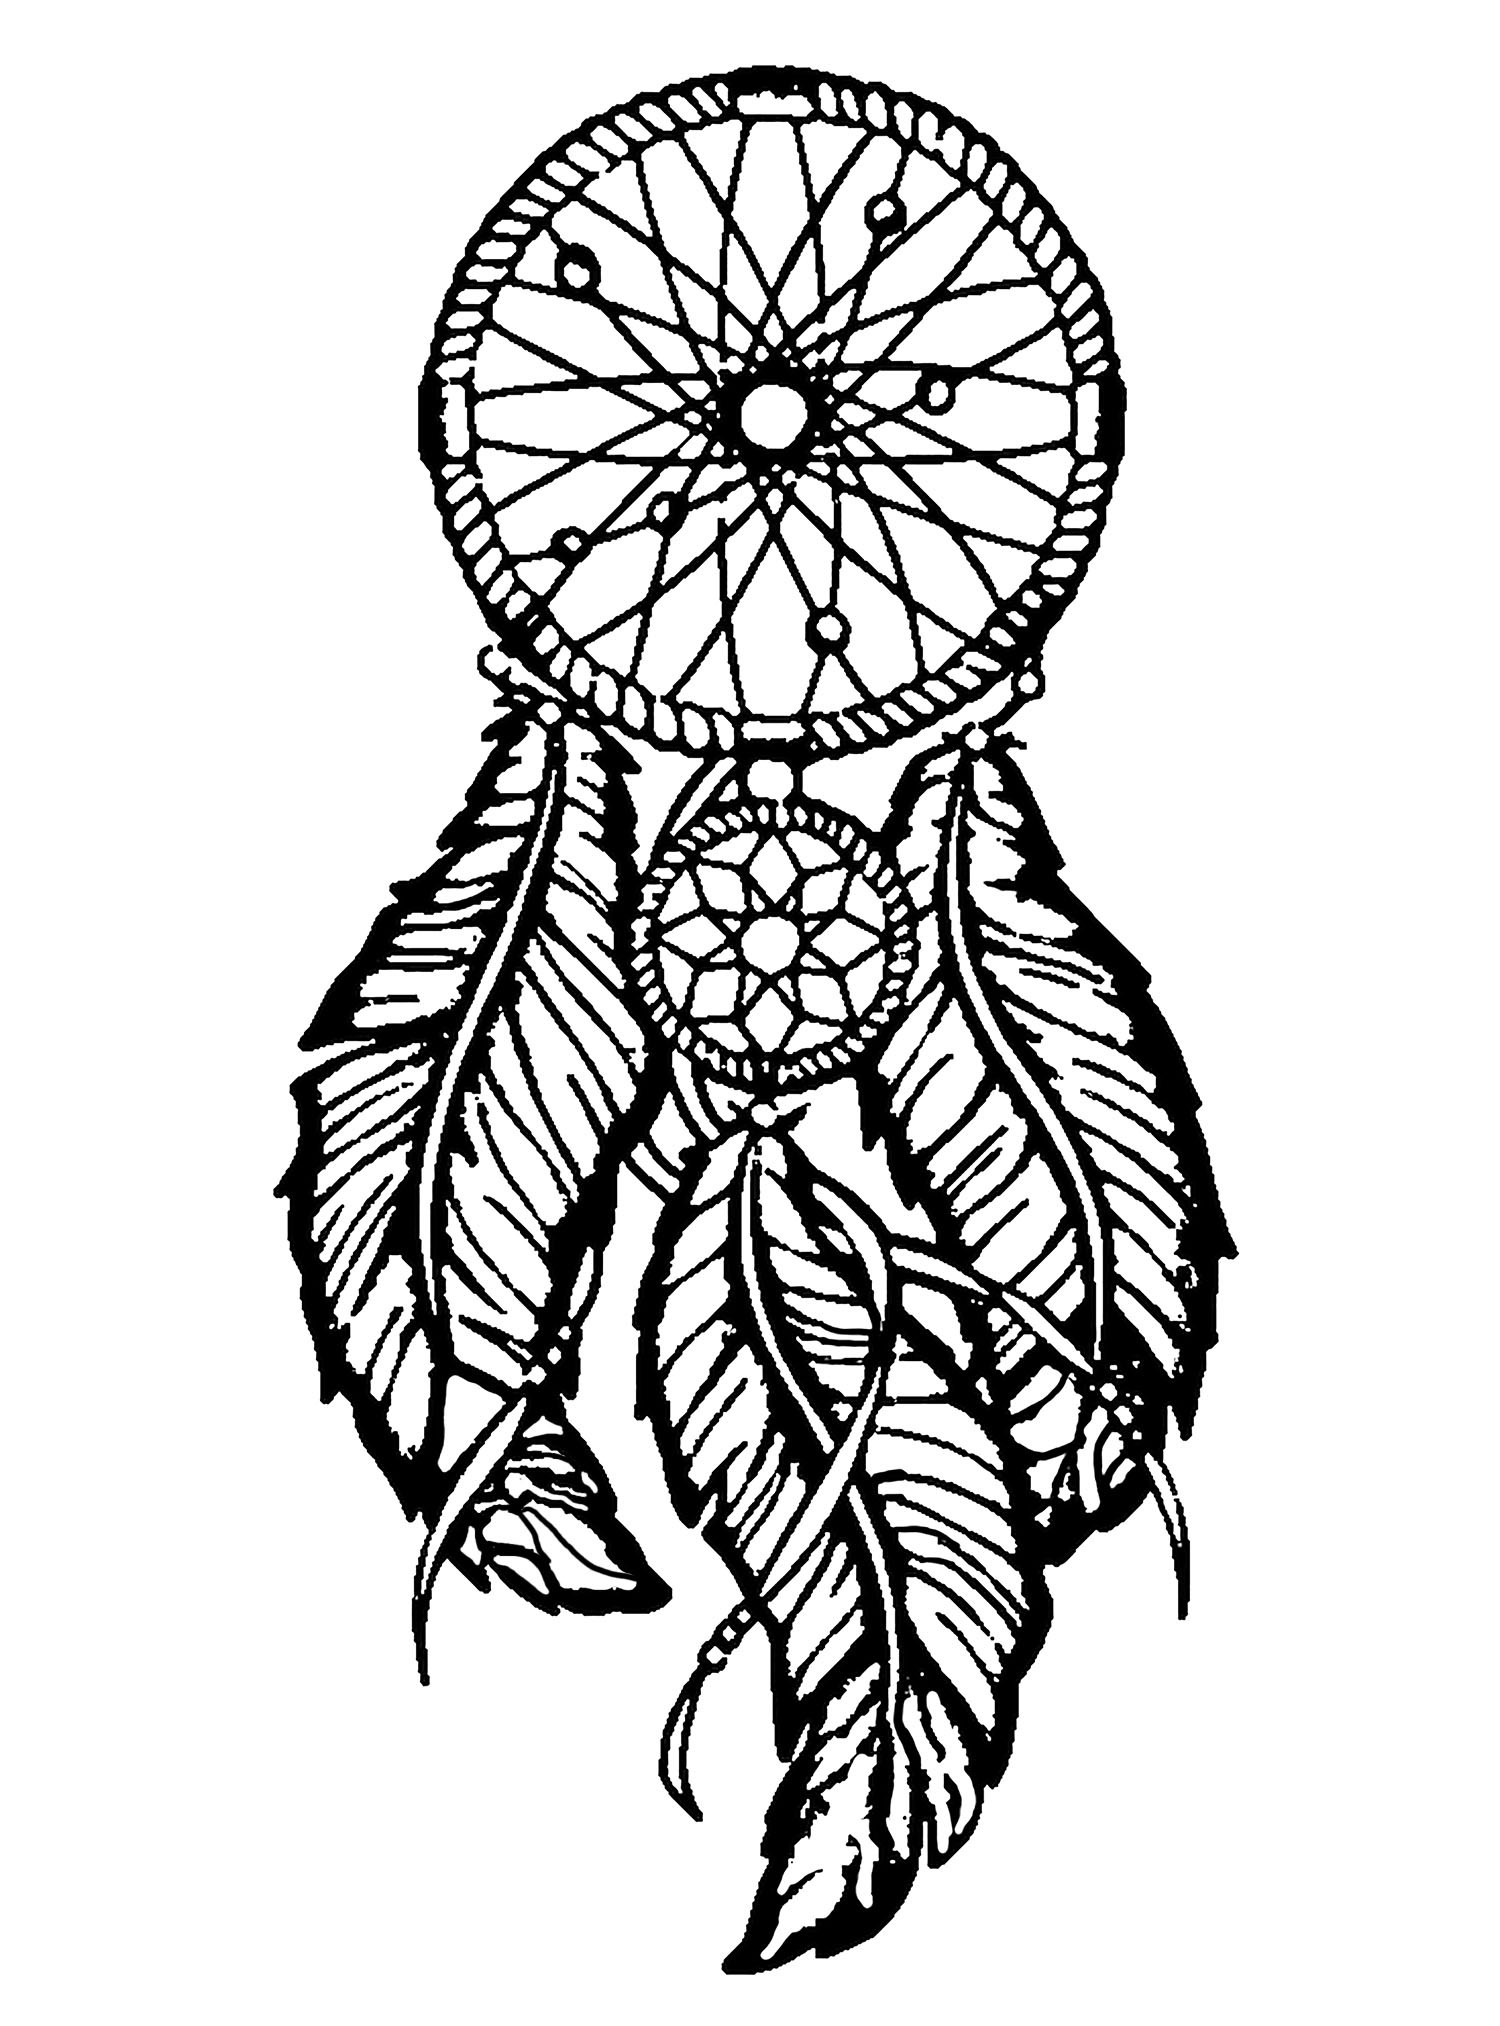 www coloring sheets dream catcher coloring pages for adults at getcolorings sheets coloring www